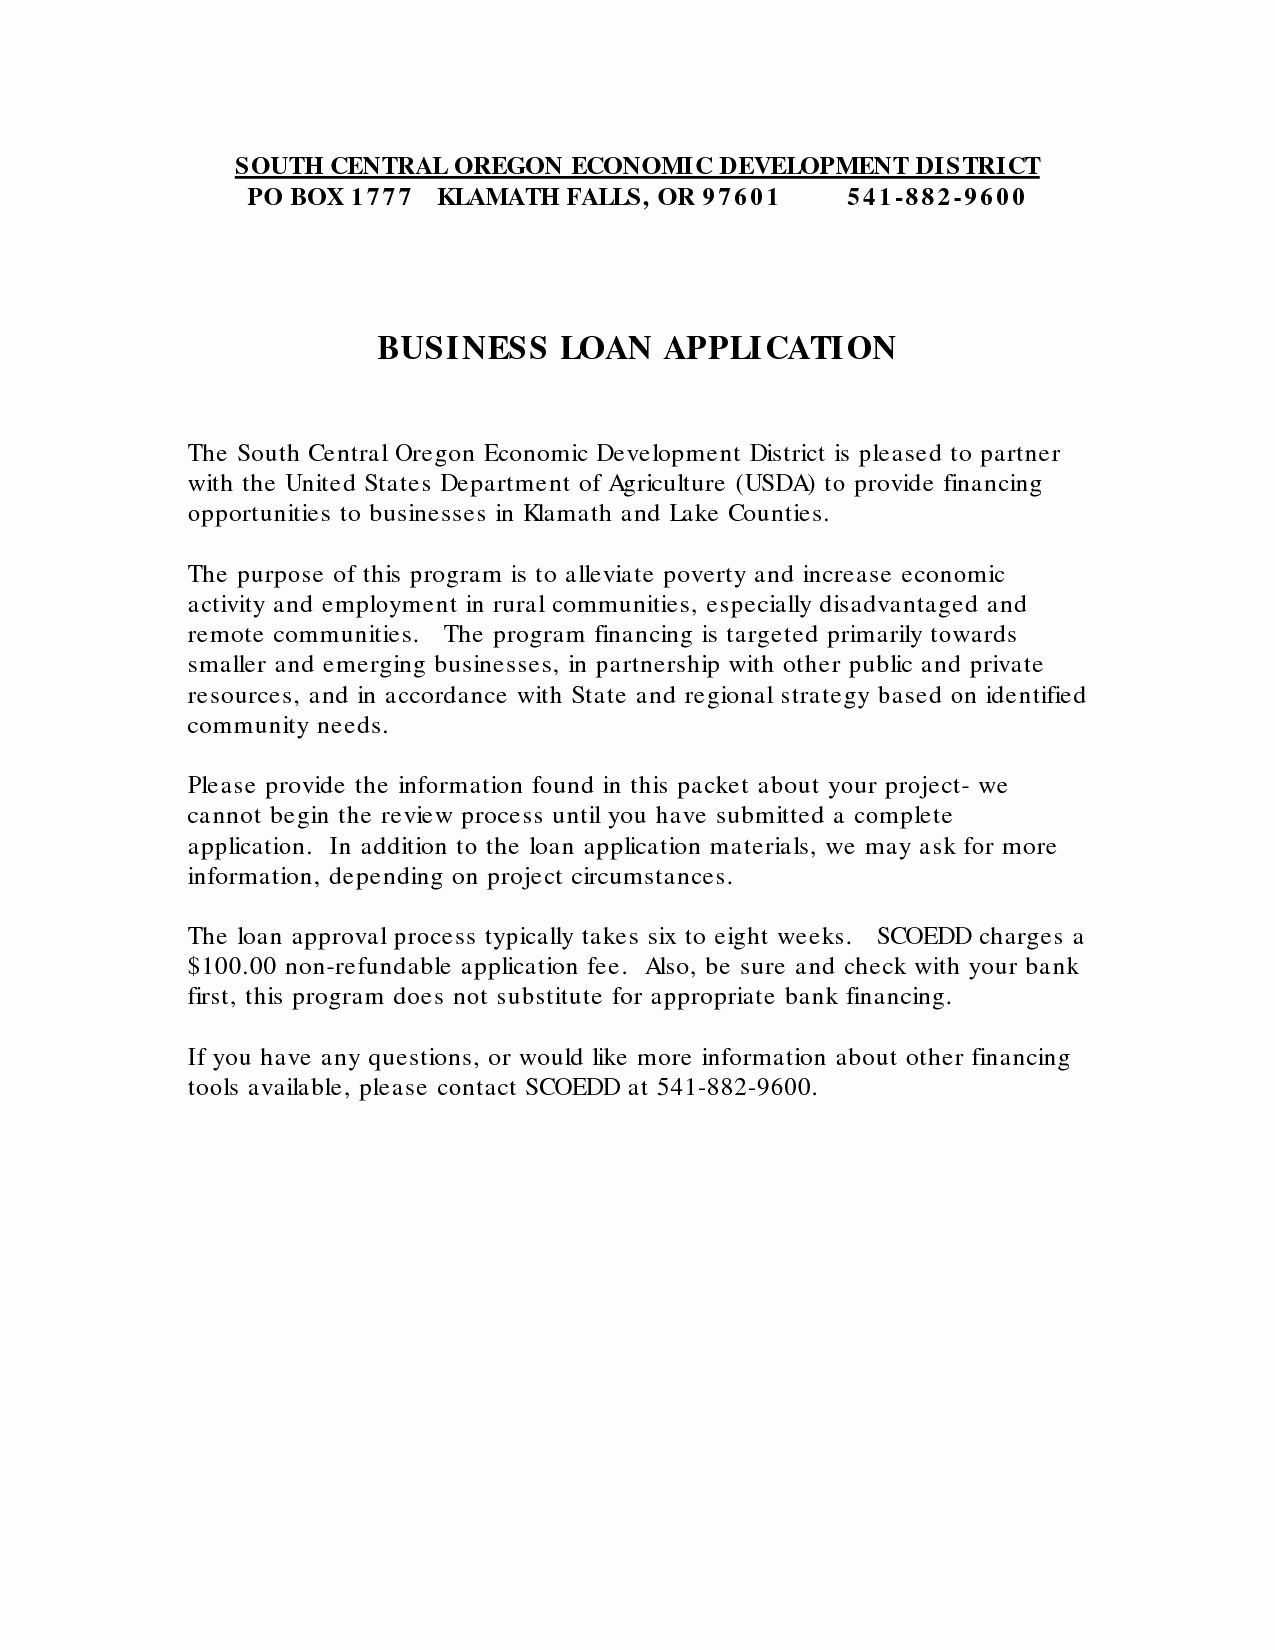 Business Loan Application Cover Letter Sample